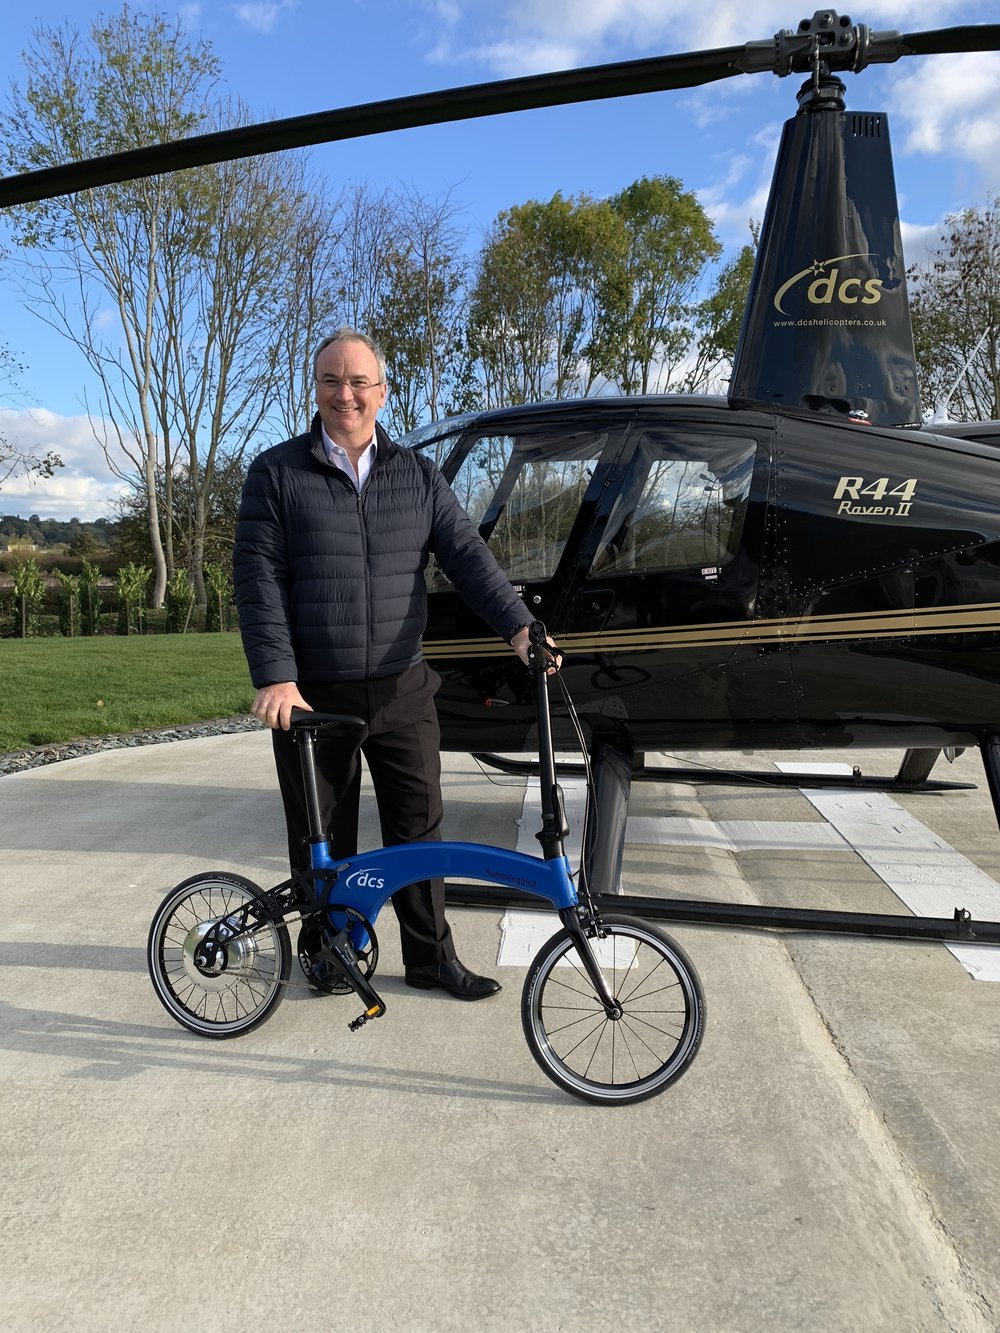 British Entrepreneur, Denys Shorrt, with his custom DCS Electric Hummingbird and  Raven II helicopter.